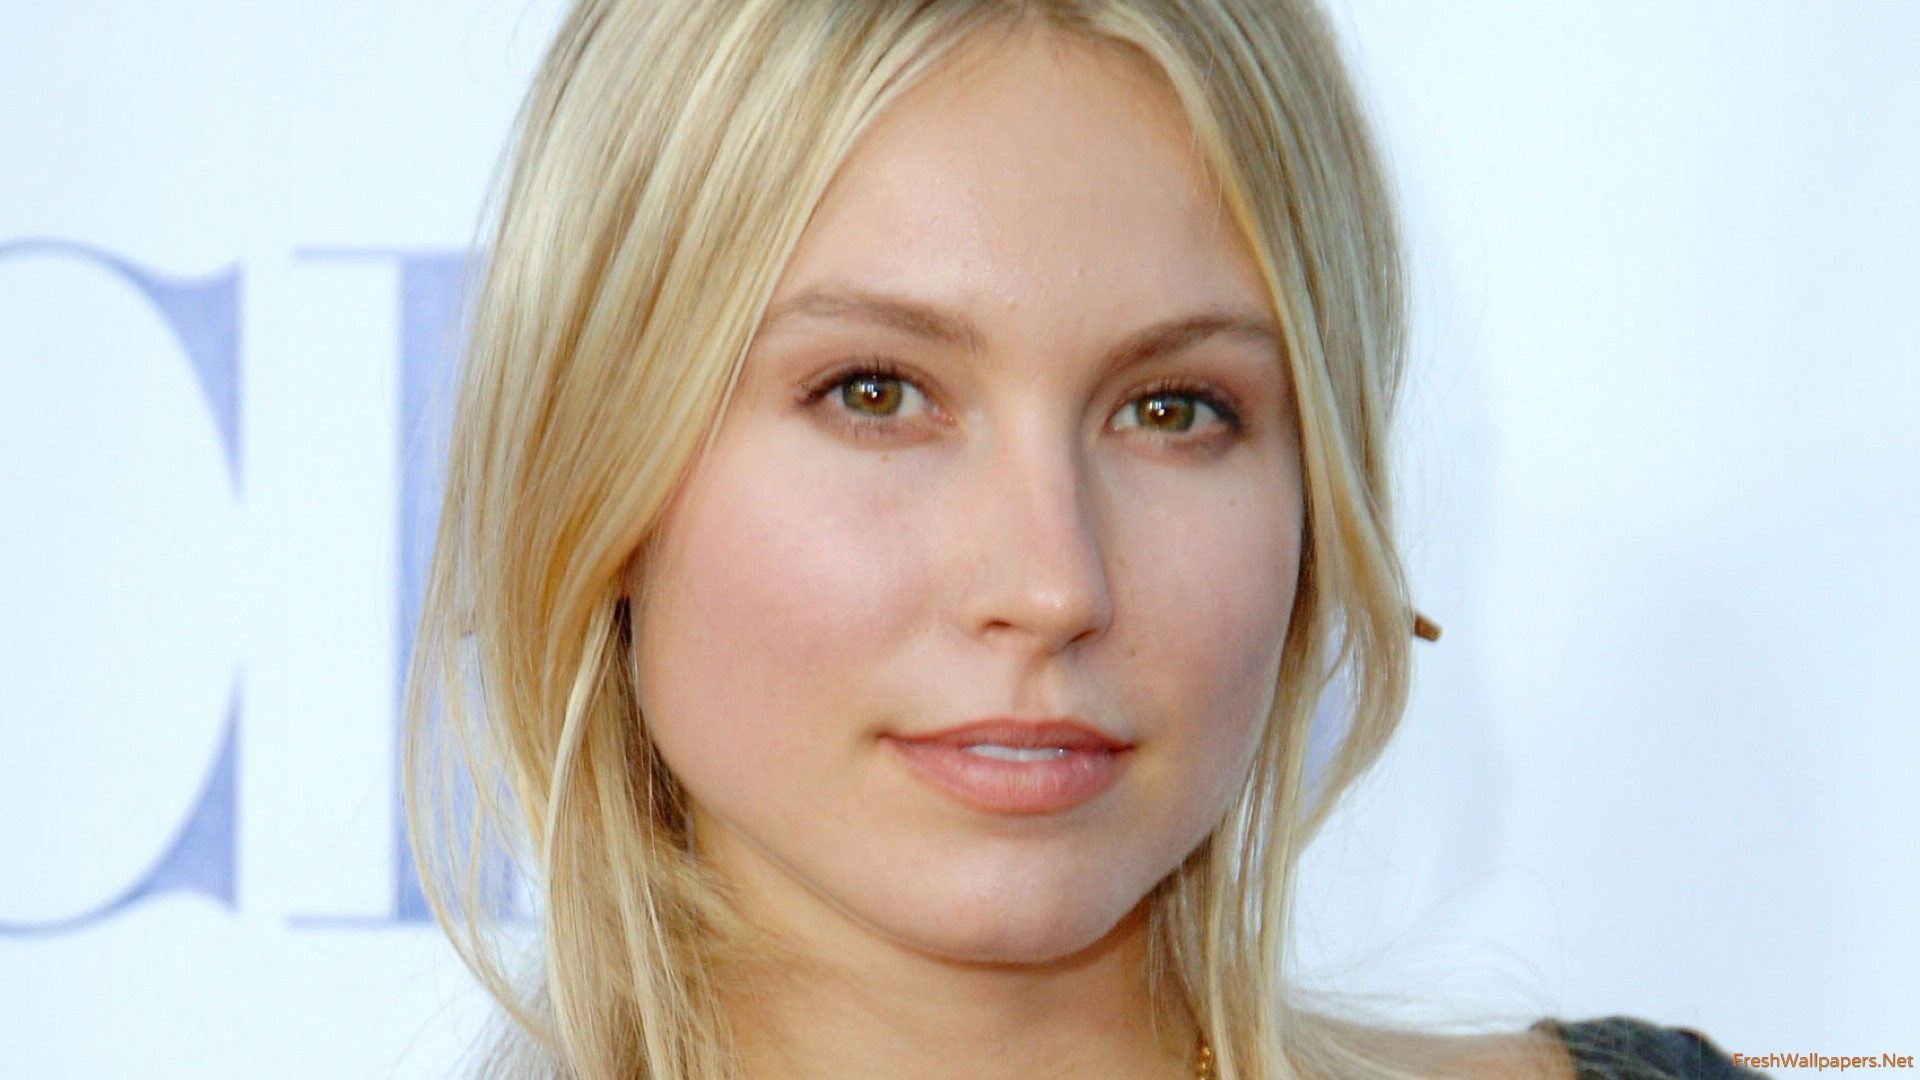 Sarah Carter Wallpapers High Resolution and Quality Download 1920x1080